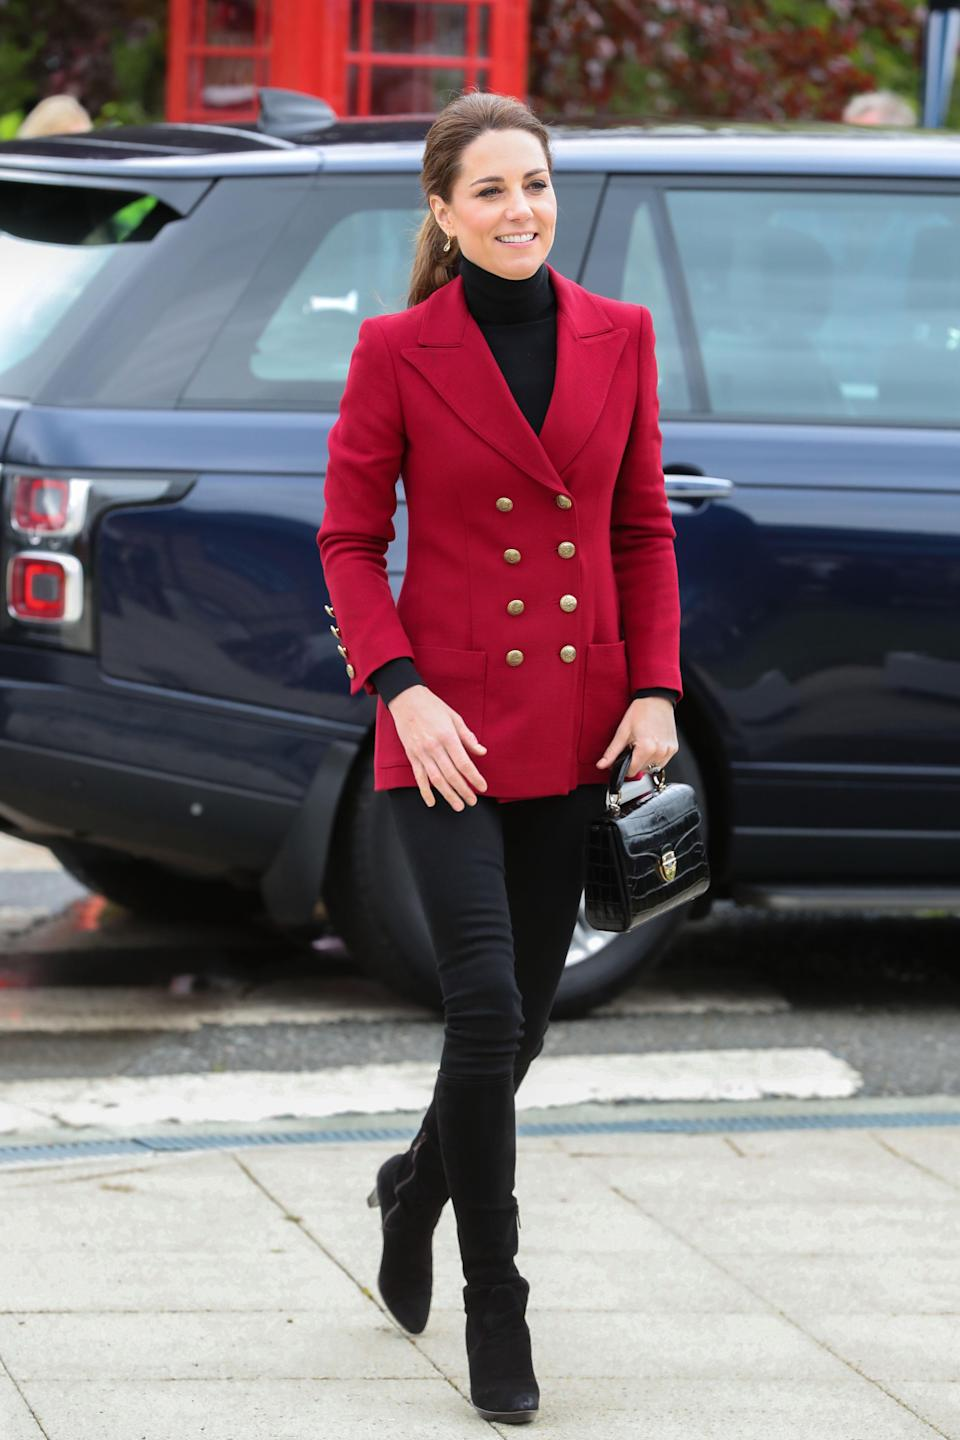 For a day of engagements in North Wales, Kate wore some old fashion favourites. She teamed her red Philosophy by Lorenzo Serafini blazer with a black roll neck and skinny jeans. She accessorised with her Aquatalia 'Rhumba' platform boots, her Aspinal Midi Mayfair bag and her Kiki McDonough citrine drop earrings. [Photo: Getty]